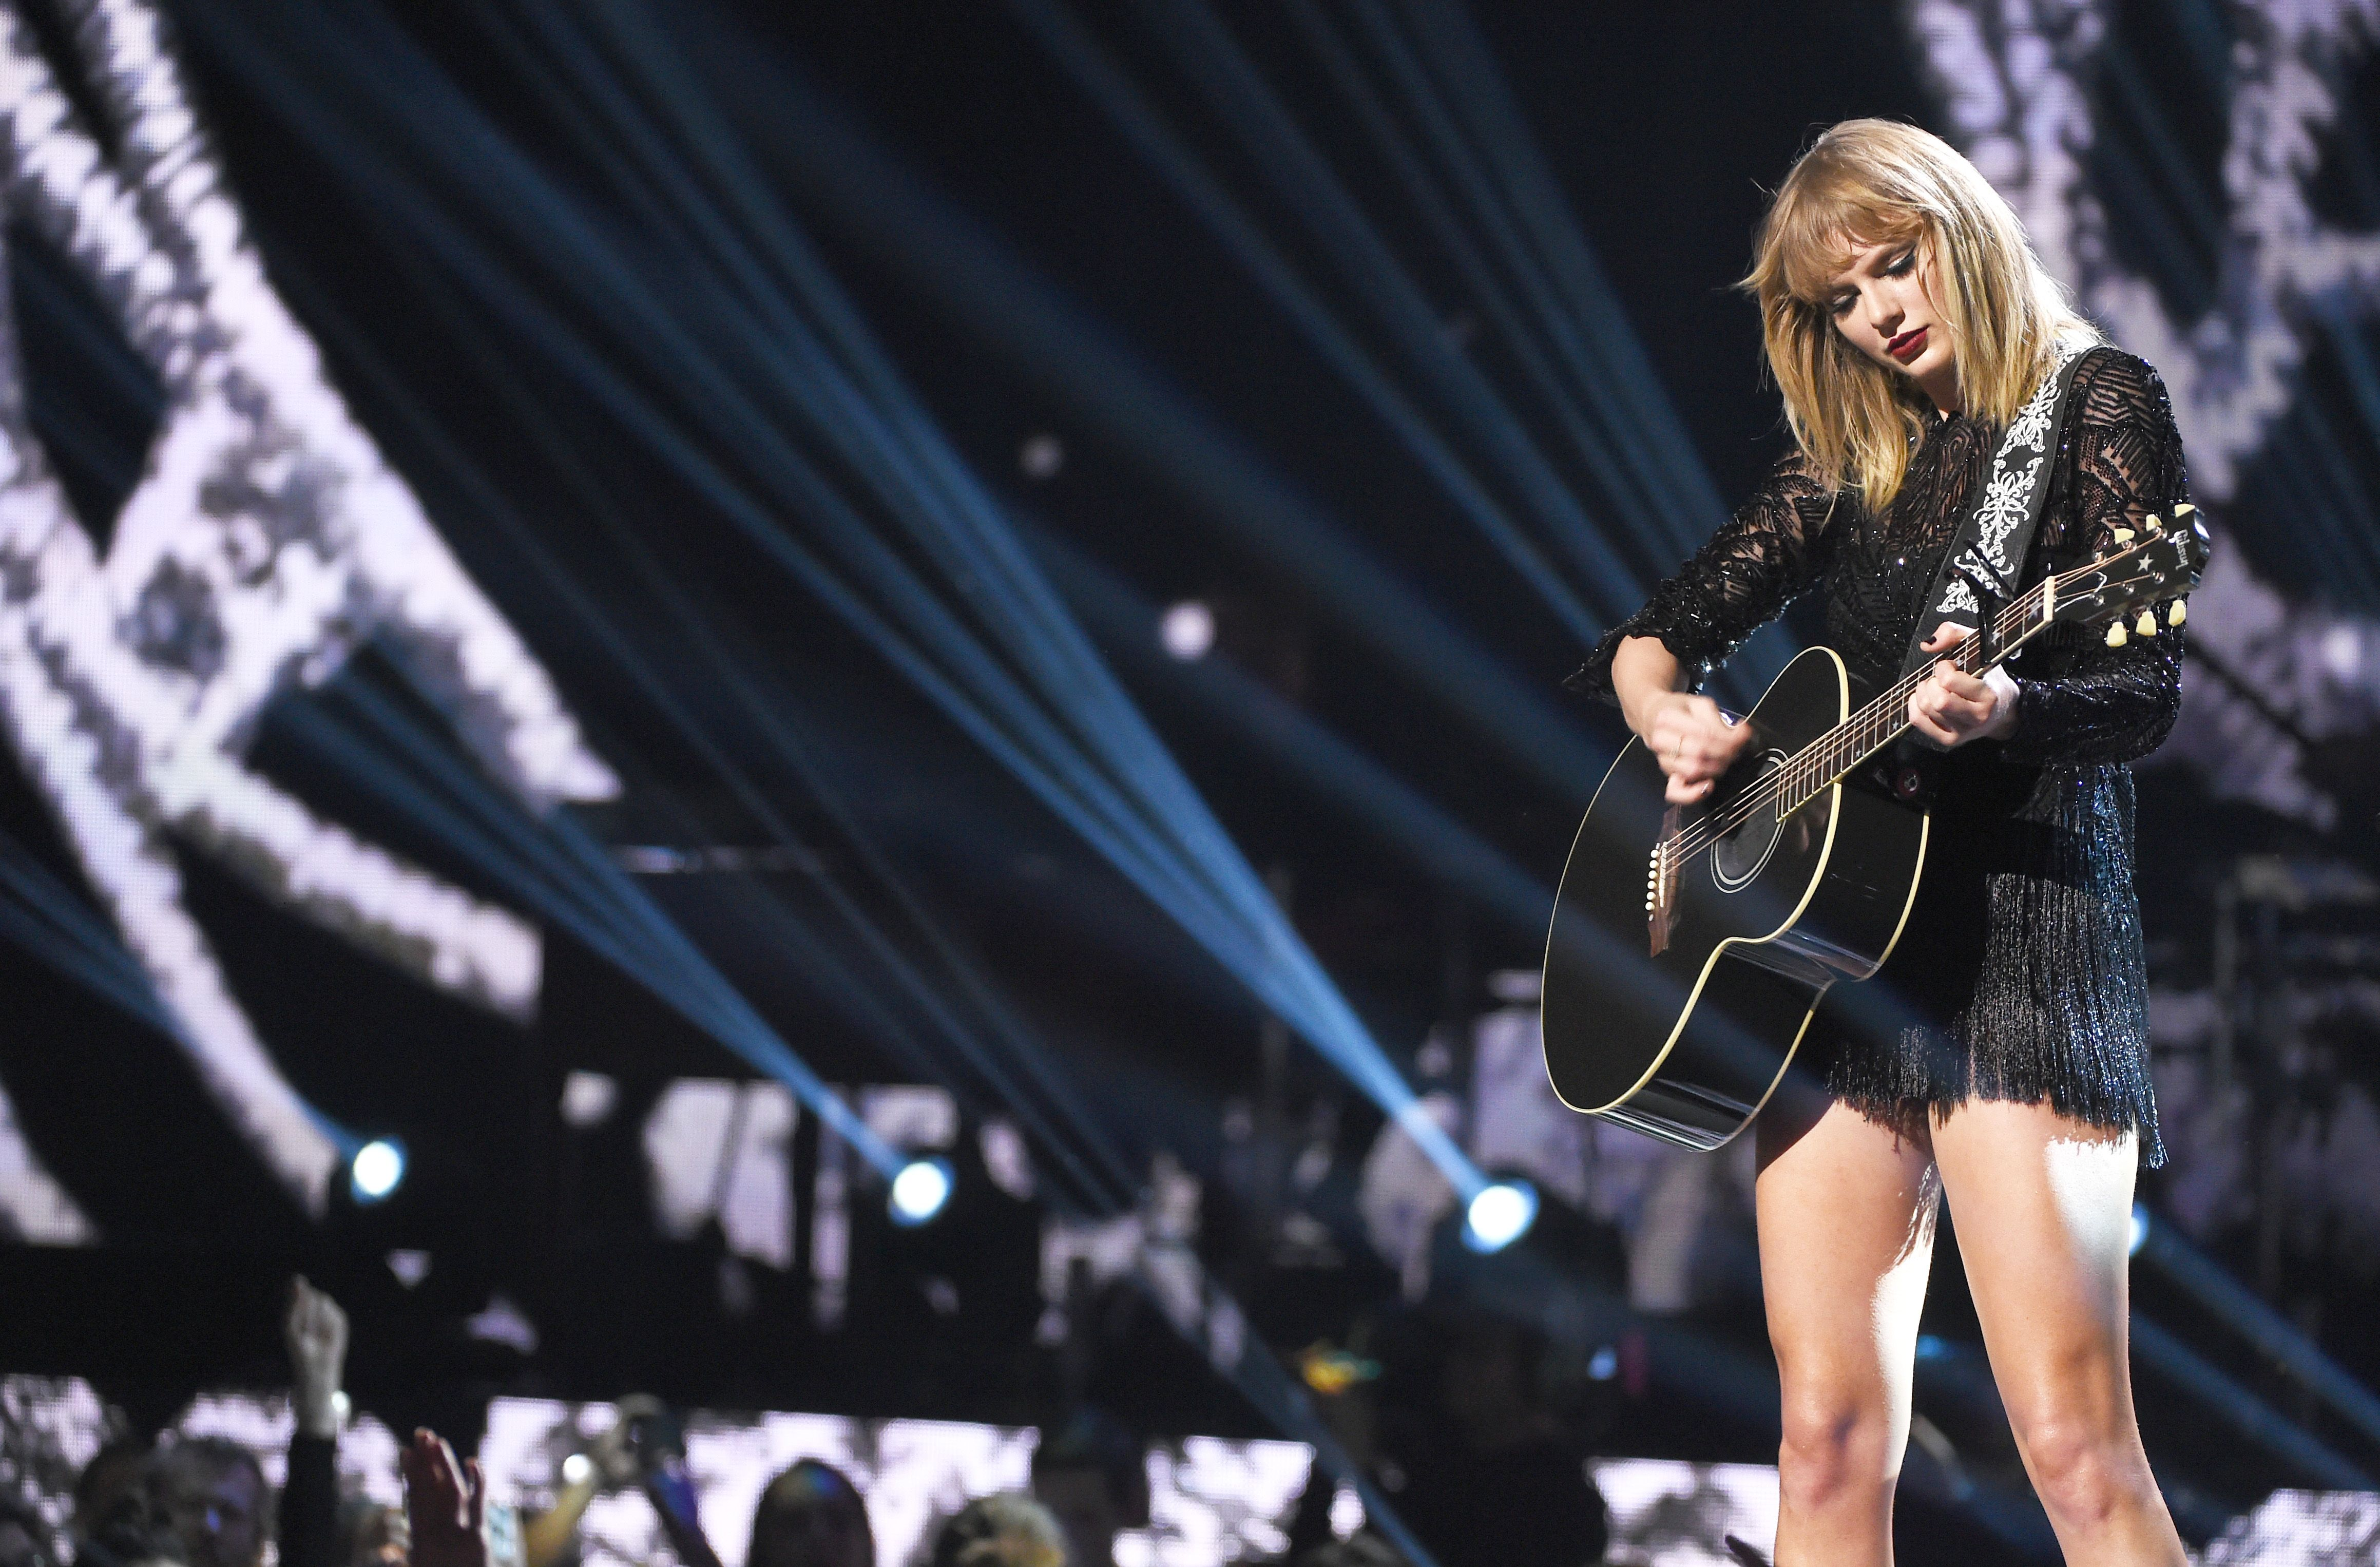 The 16 Best Taylor Swift Songs to Listen to - T Swift Playlist